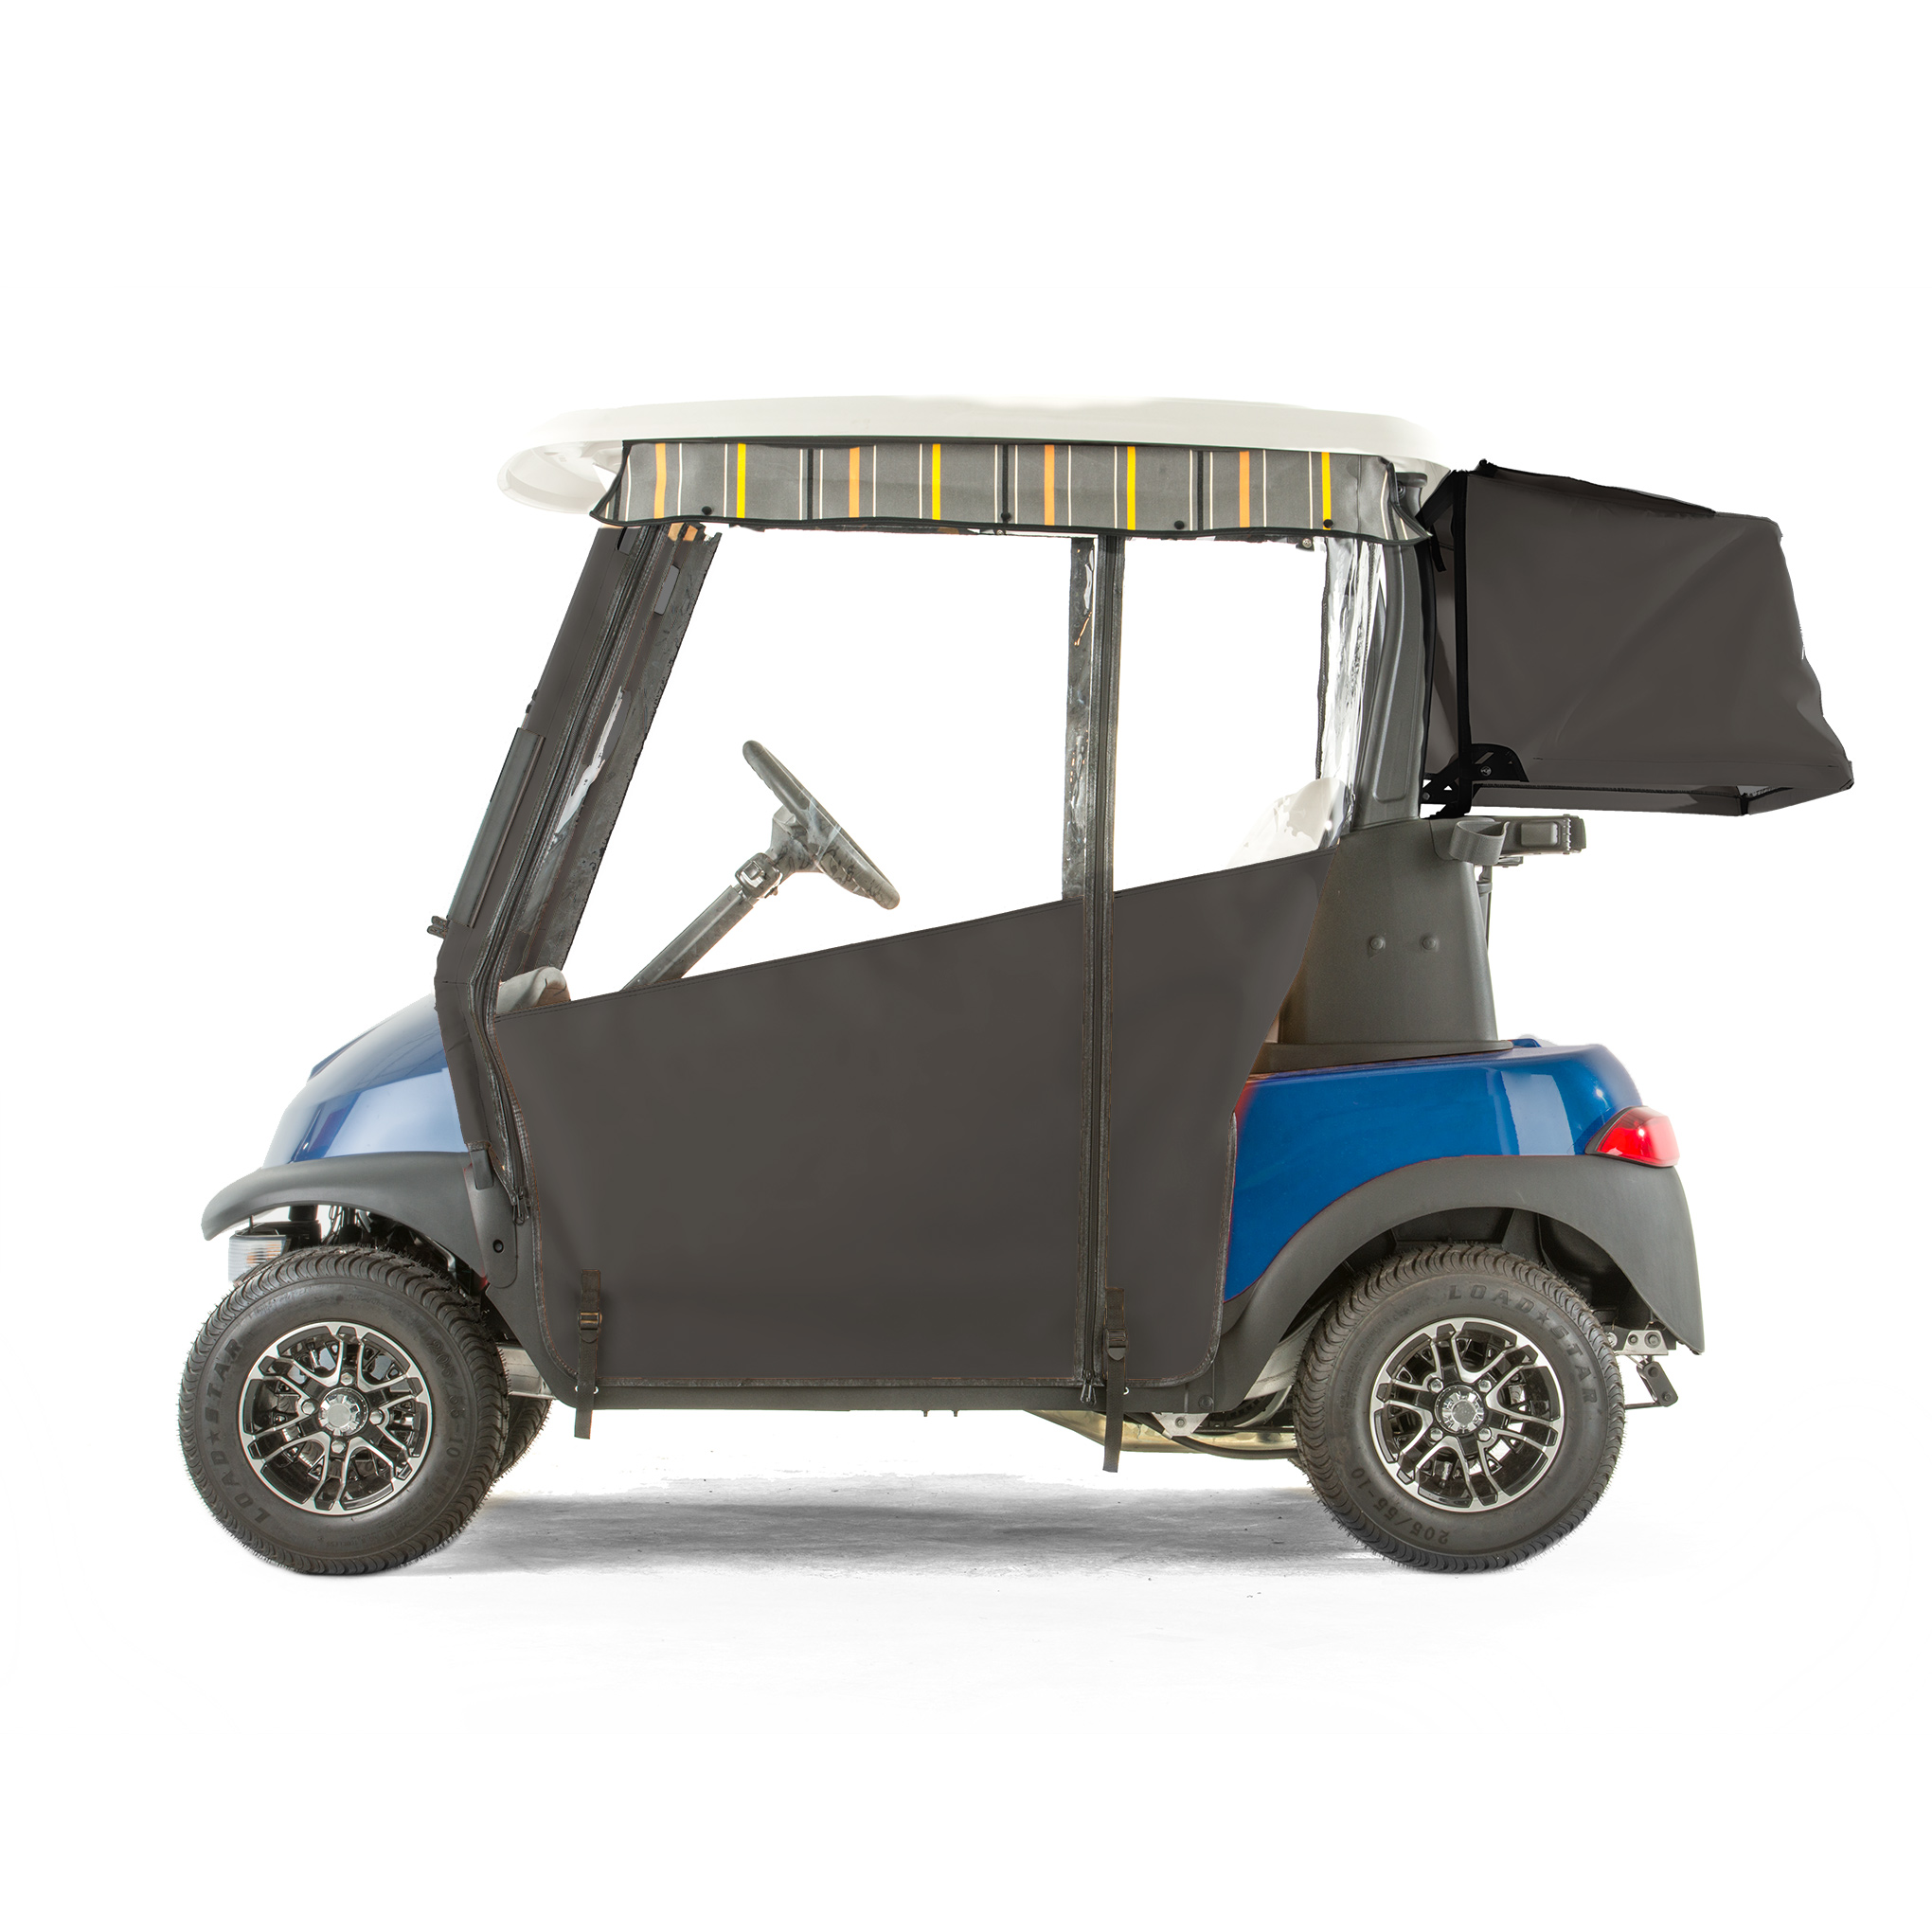 Club Car Precedent Golf Cart PRO-TOURING Sunbrella Track Enclosure - Black